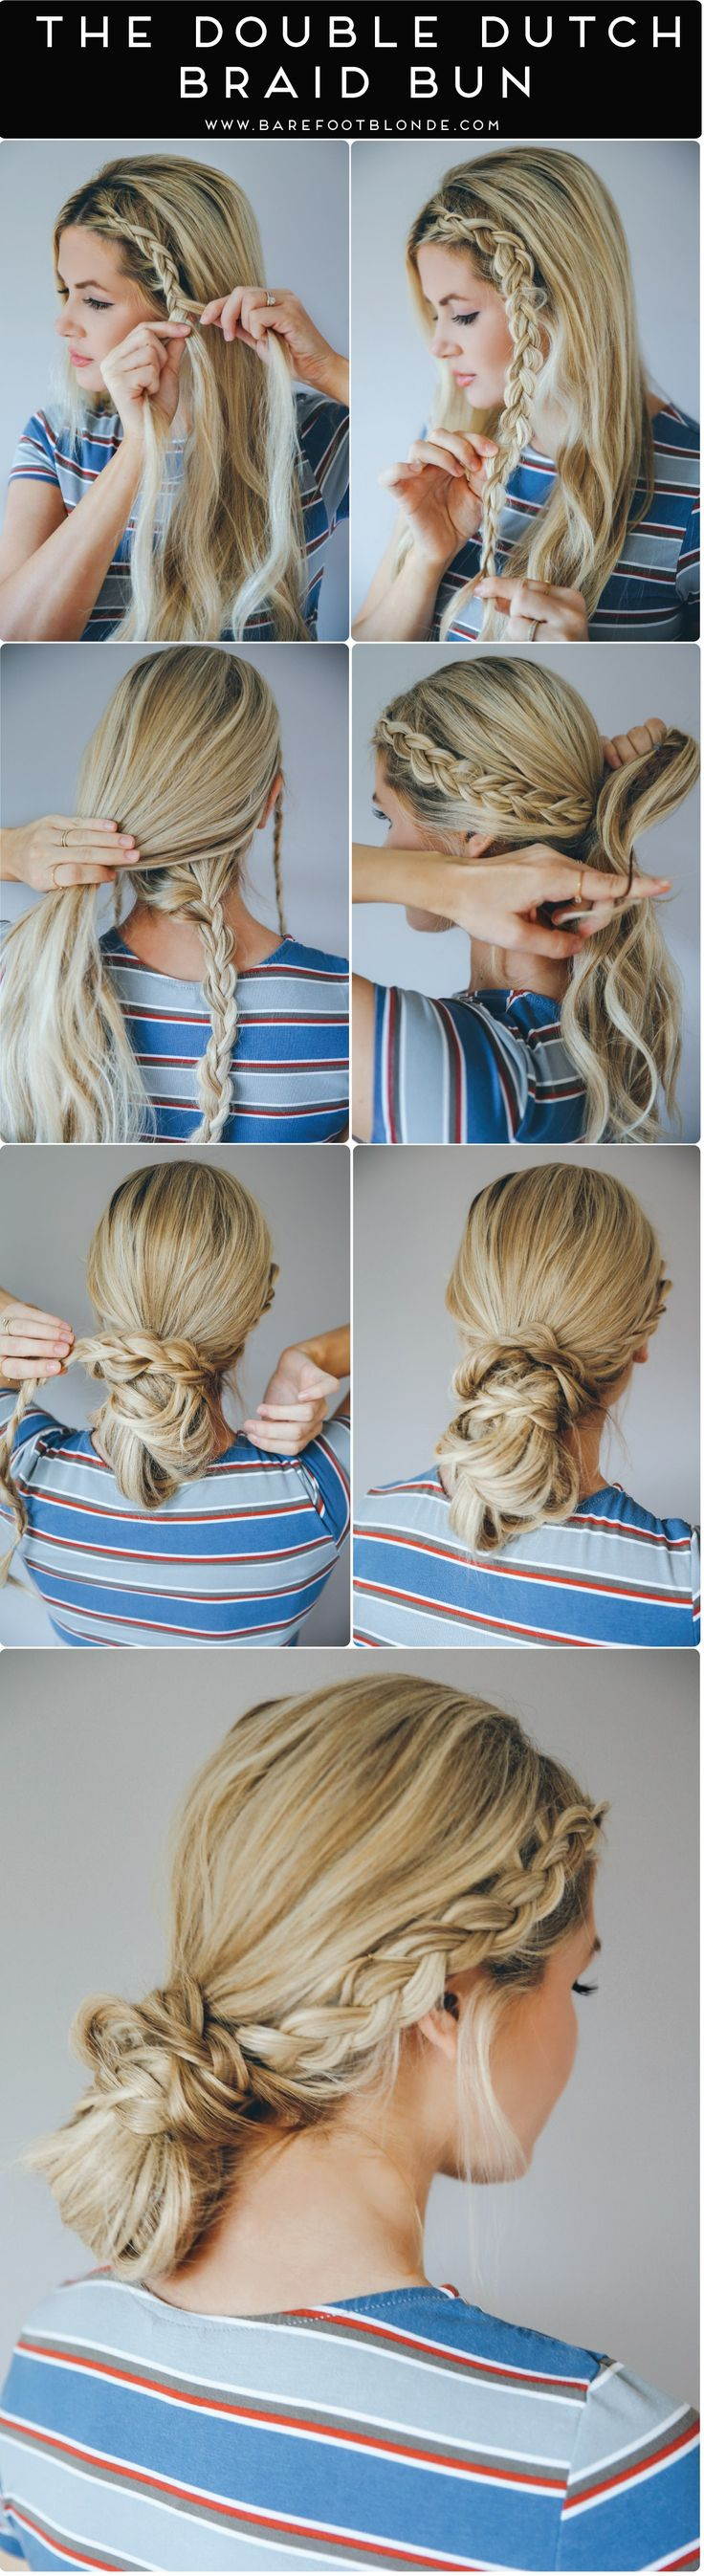 138 best Hairstyles images on Pinterest